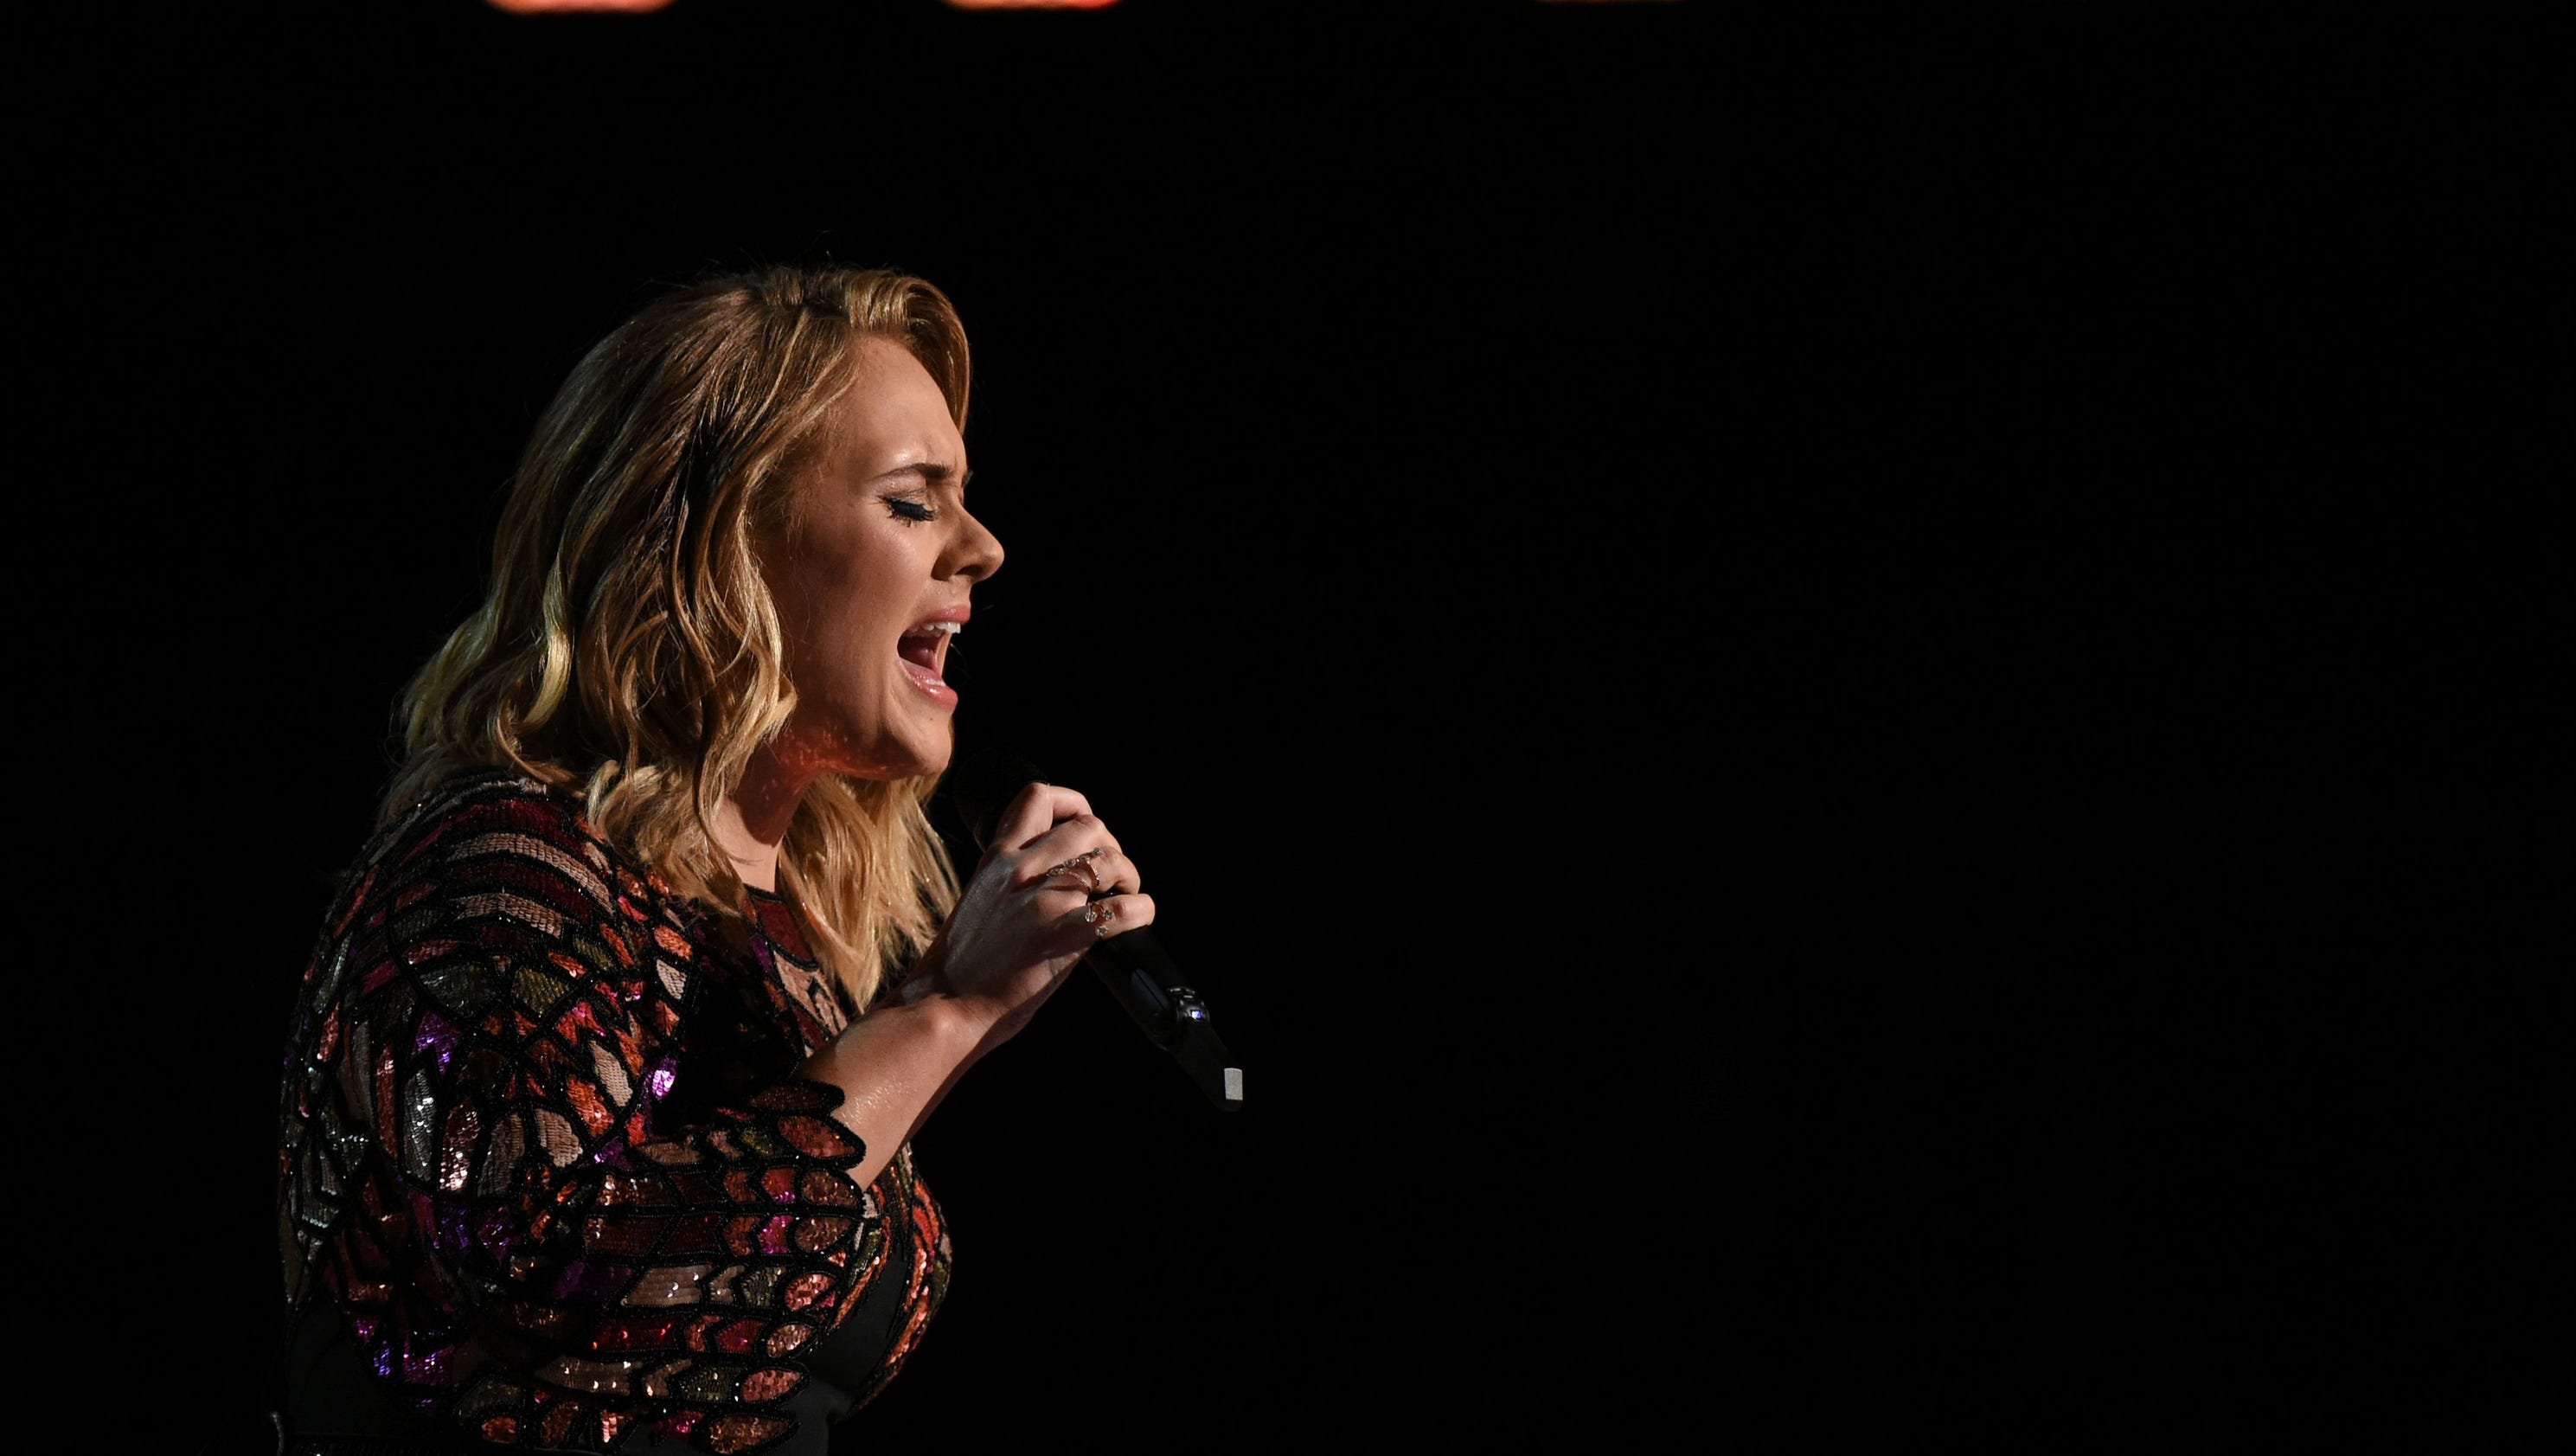 Adele Has 'damaged' Vocal Cords, Cancels Final Shows